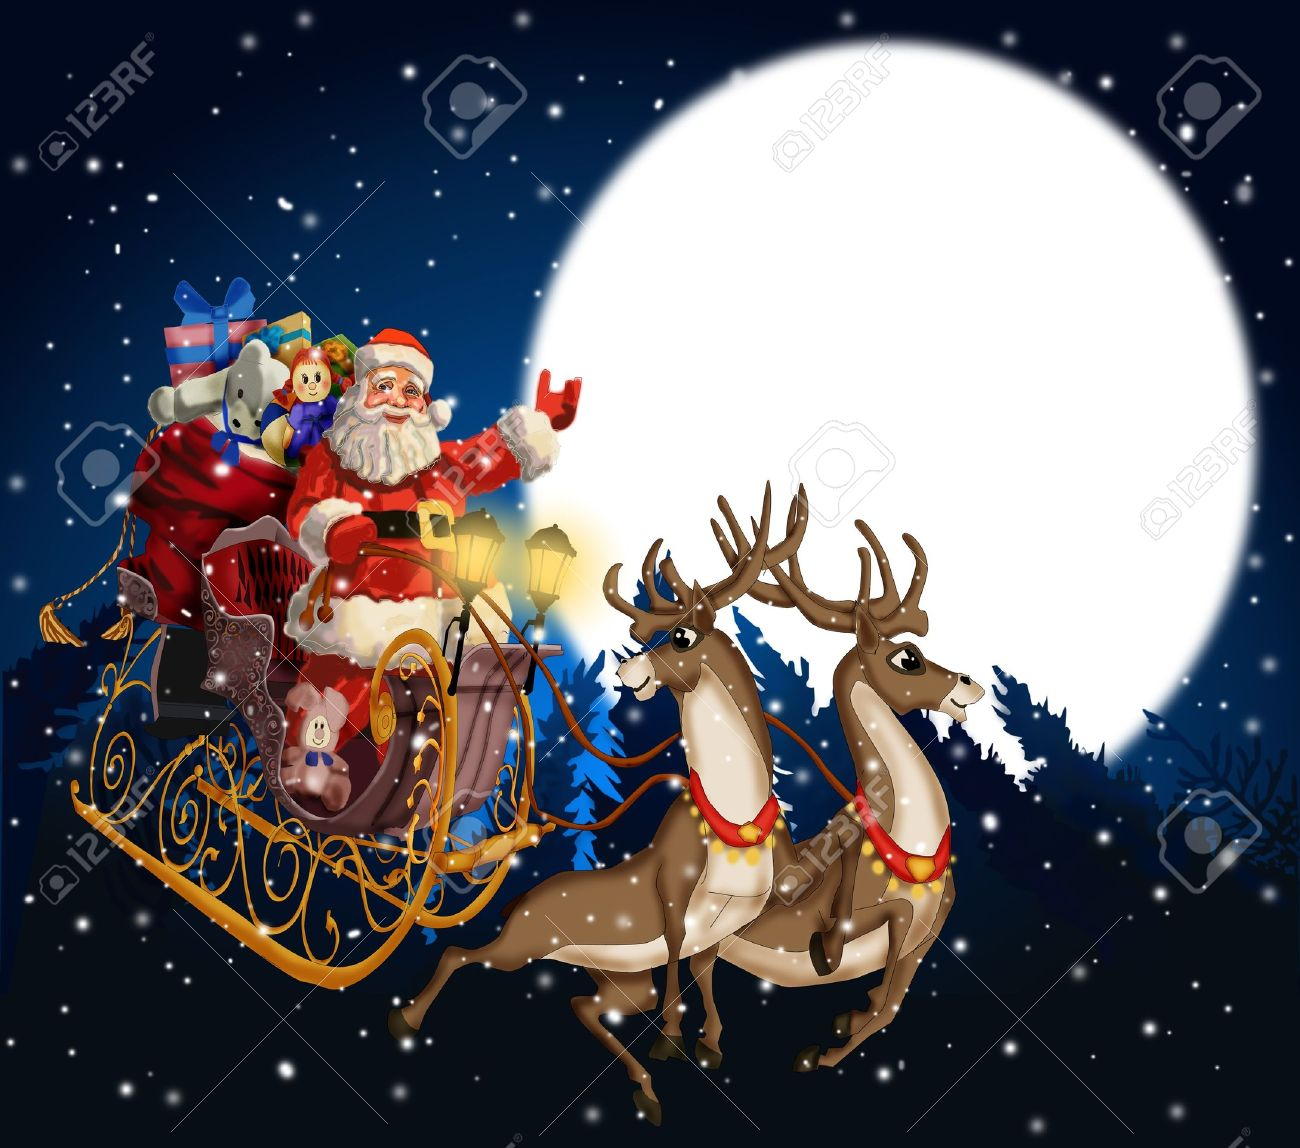 christmas background with santa claus in a sleigh with reindeer stock photo 11140655